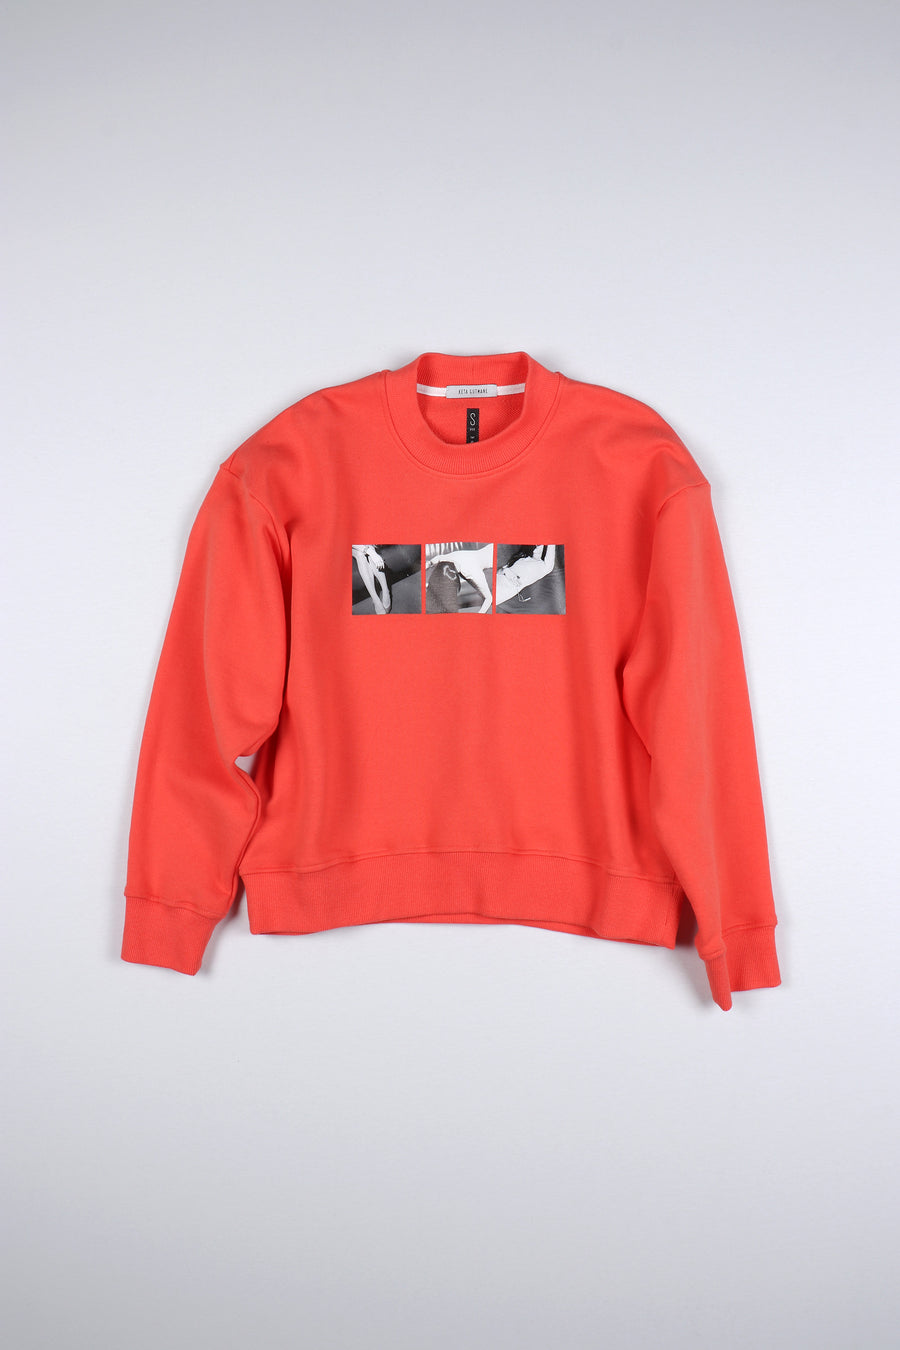 PINK/ORANGE PHOTO STORY SWEATSHIRT B&W